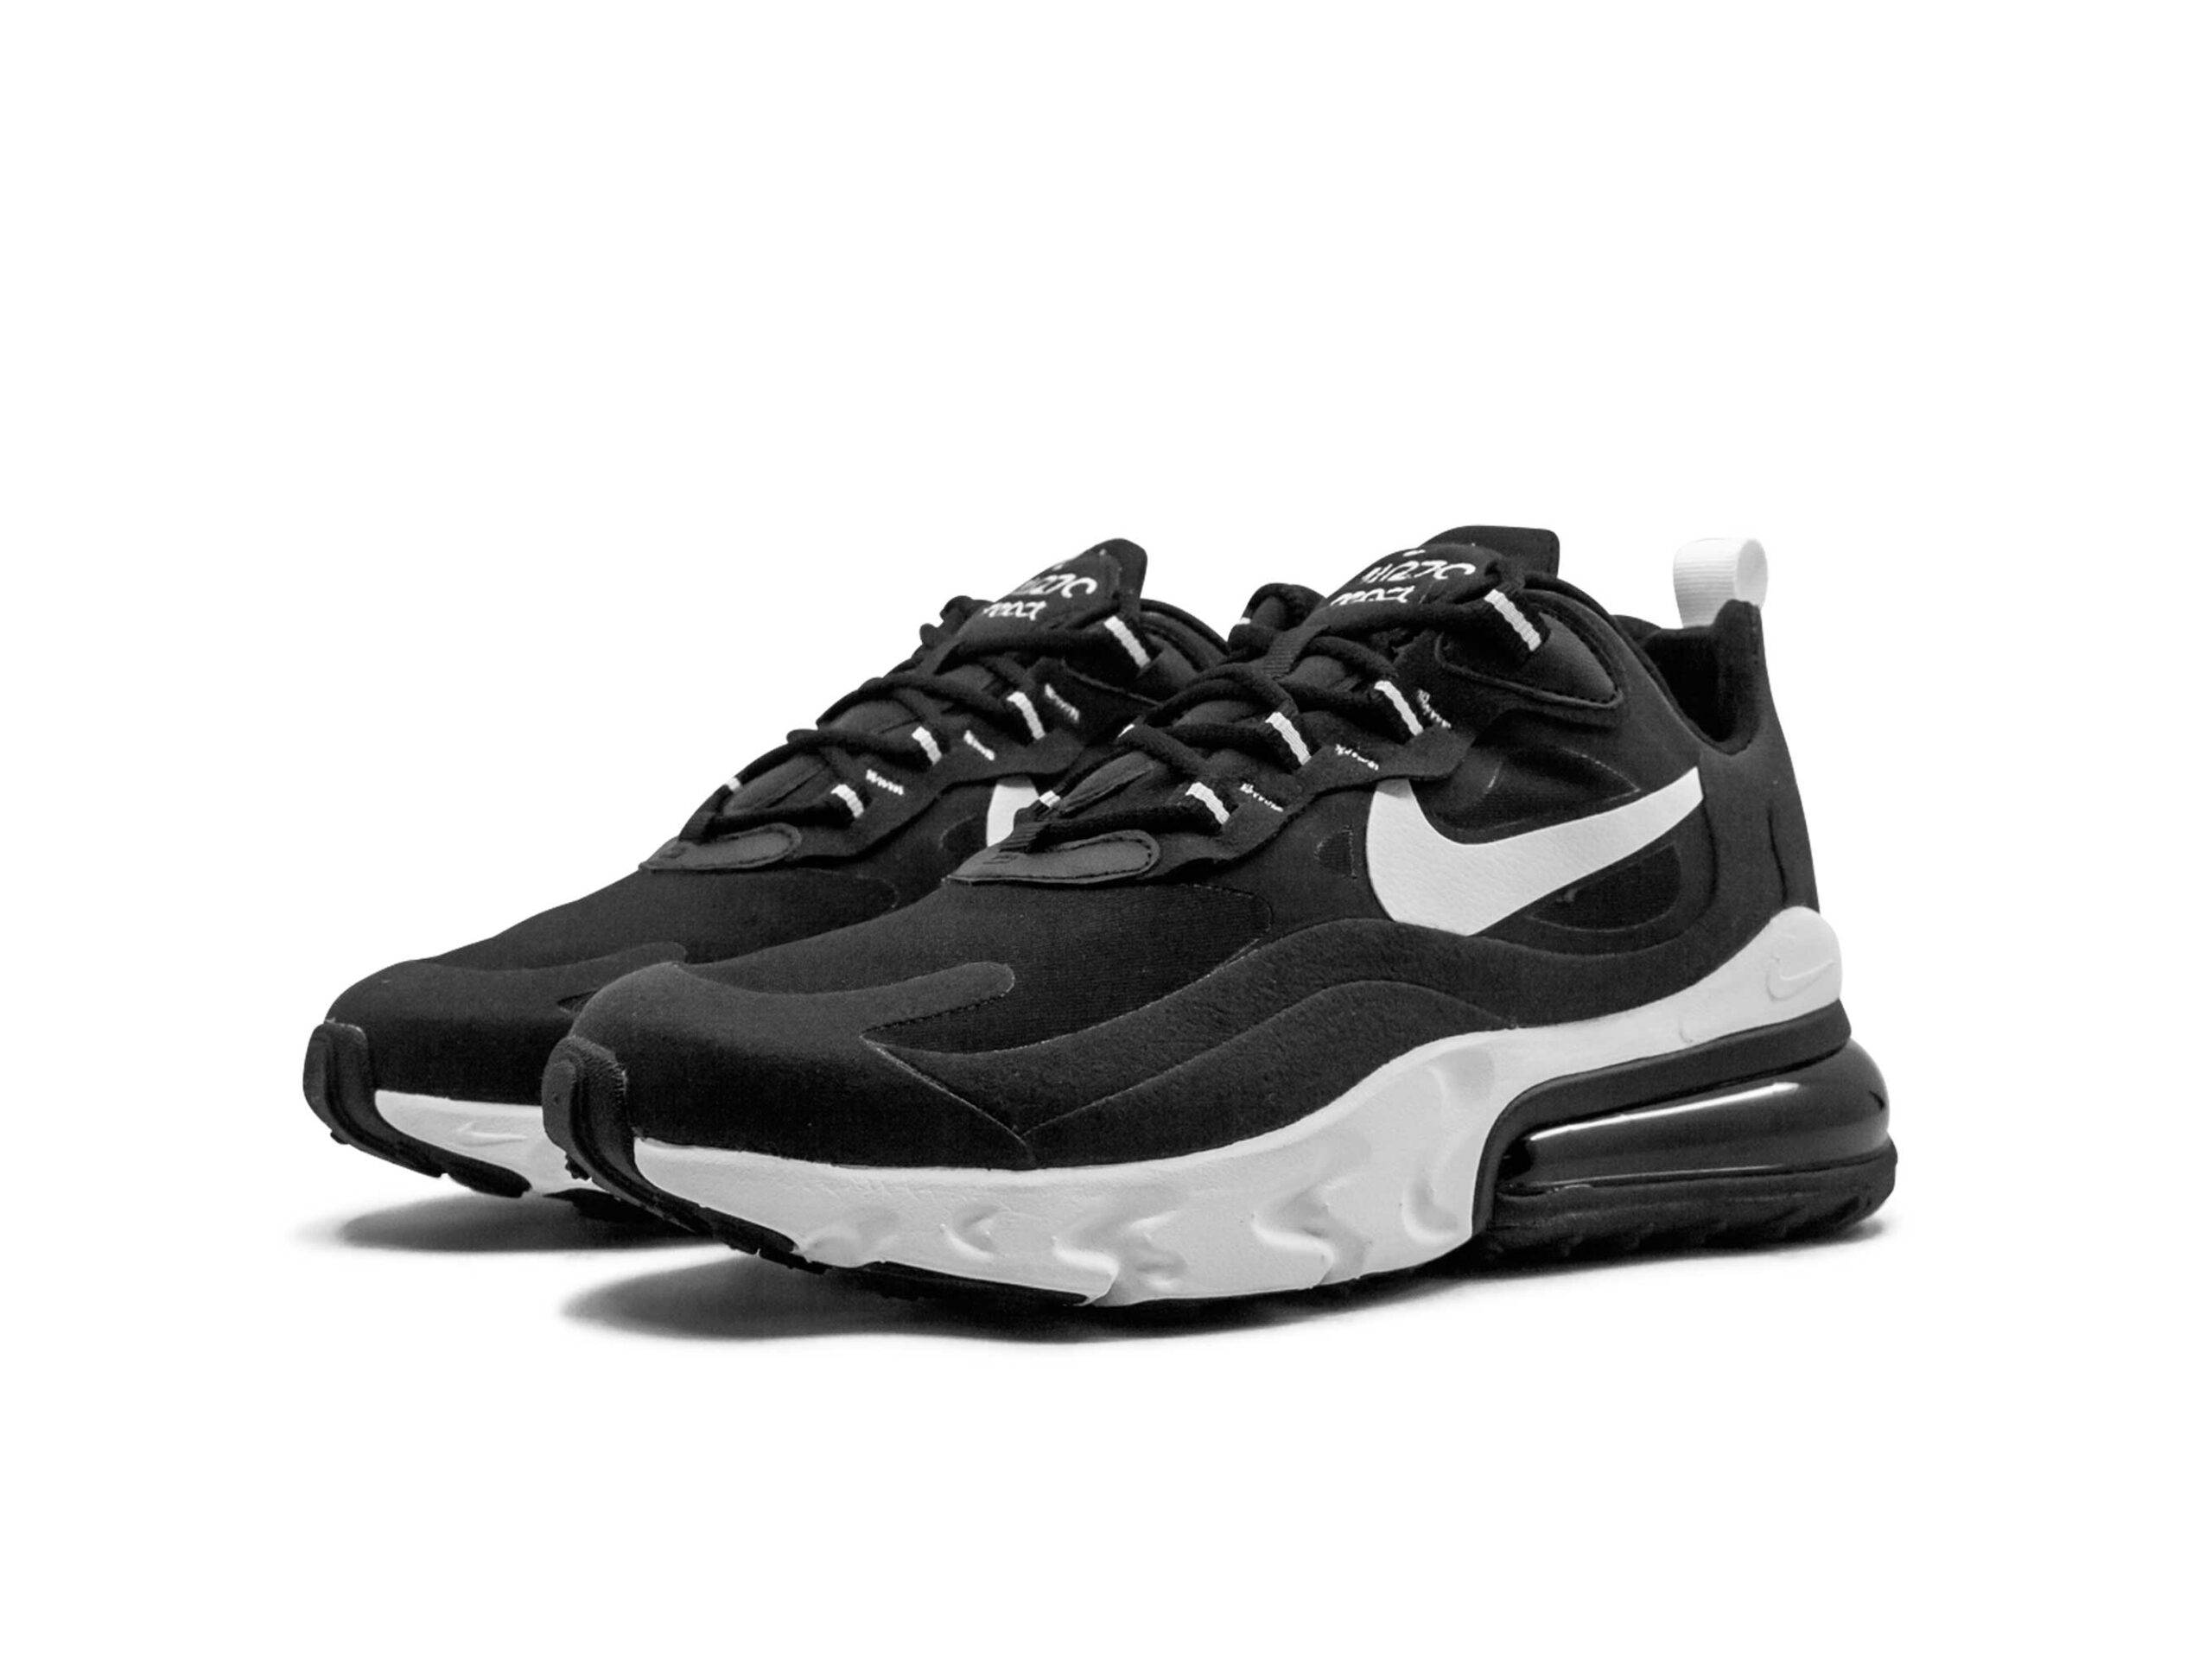 nike air max 270 react black white AT6174_004 купить